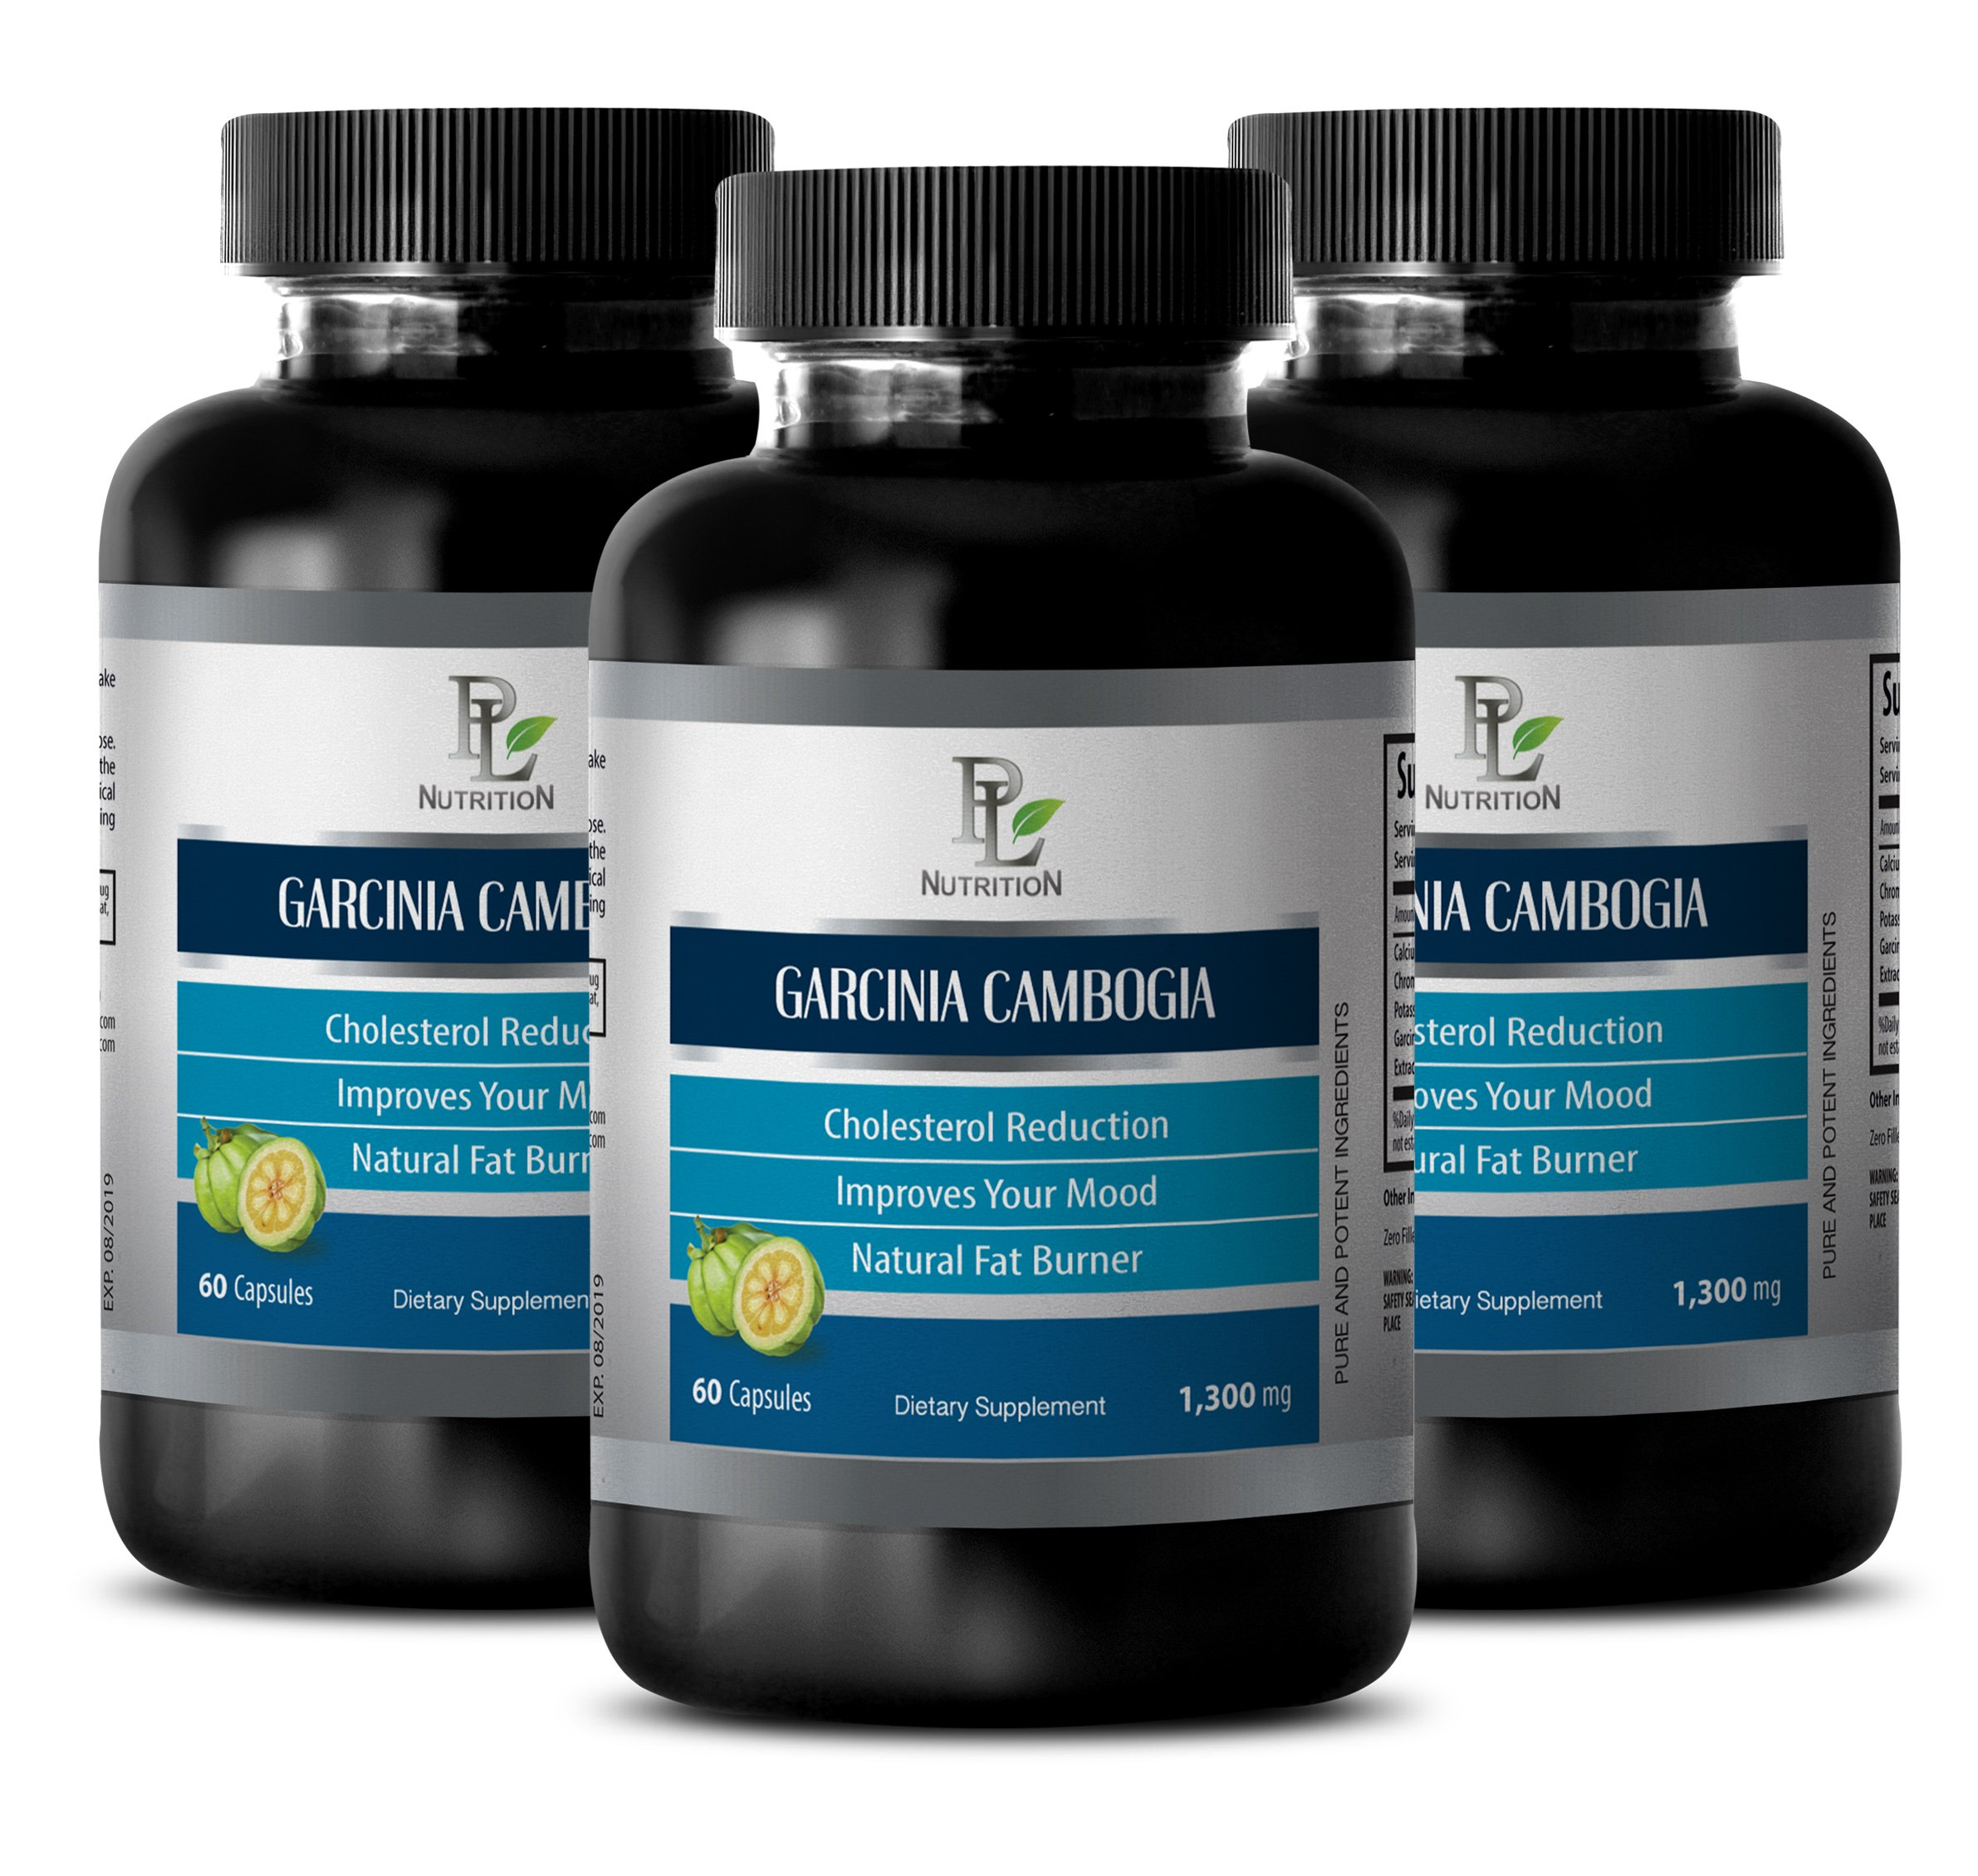 Supplements for metabolism - GARCINIA CAMBOGIA EXTRACT - Metabolism pills - 3 Bottle 180 Capsules by PL NUTRITION